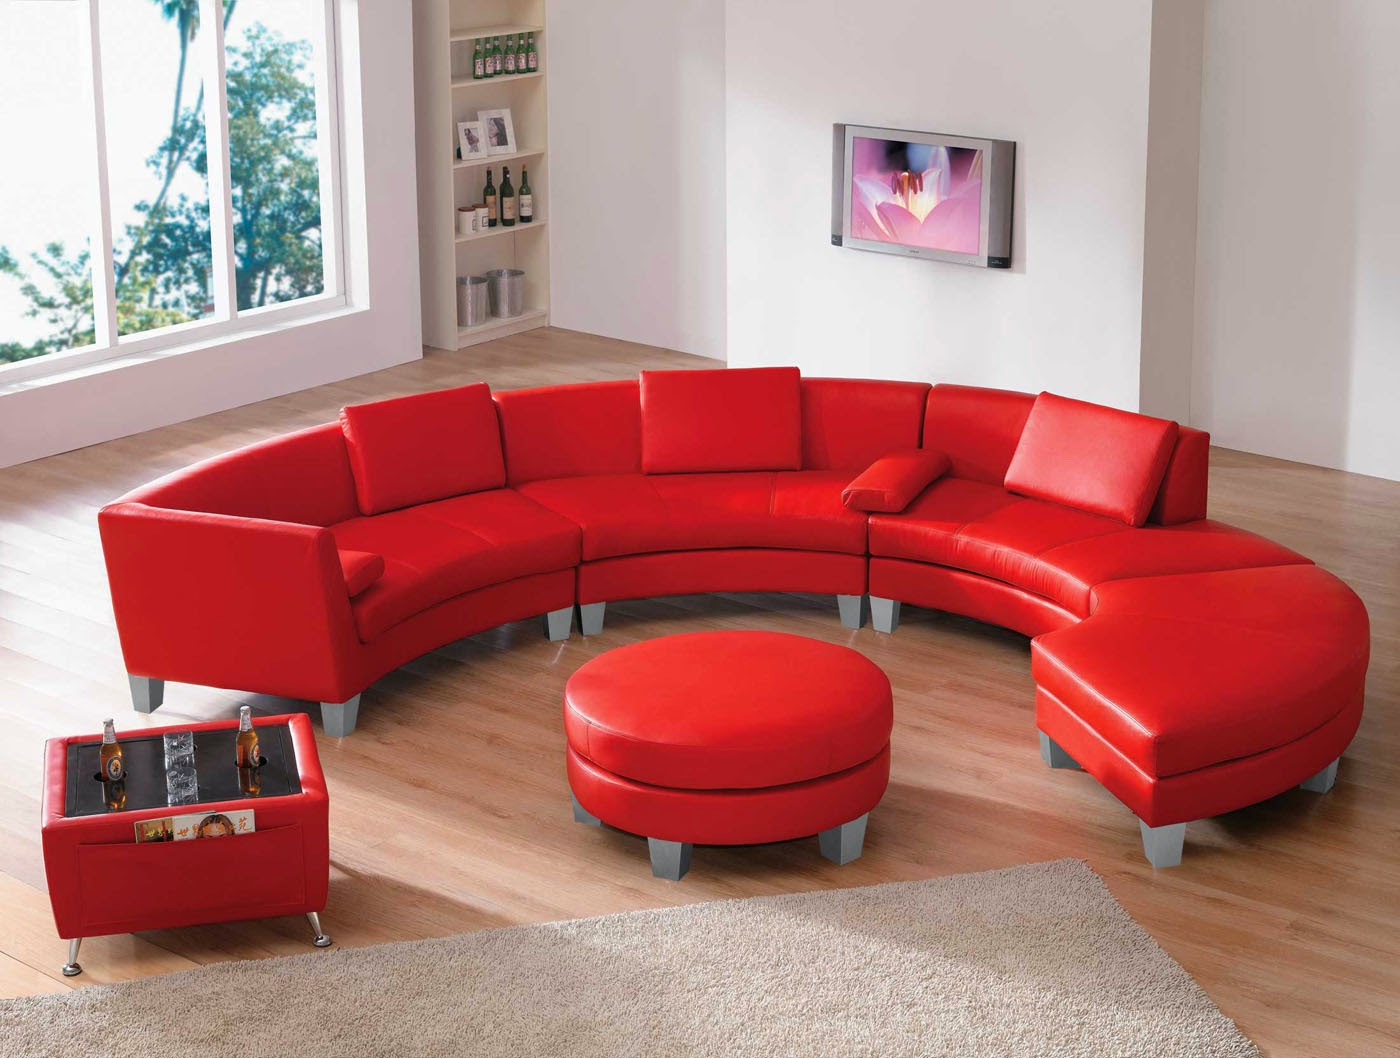 Sofa Sets In Living Room Contemporary Sofa Ideas Modern Ideas For Living Room Furniture